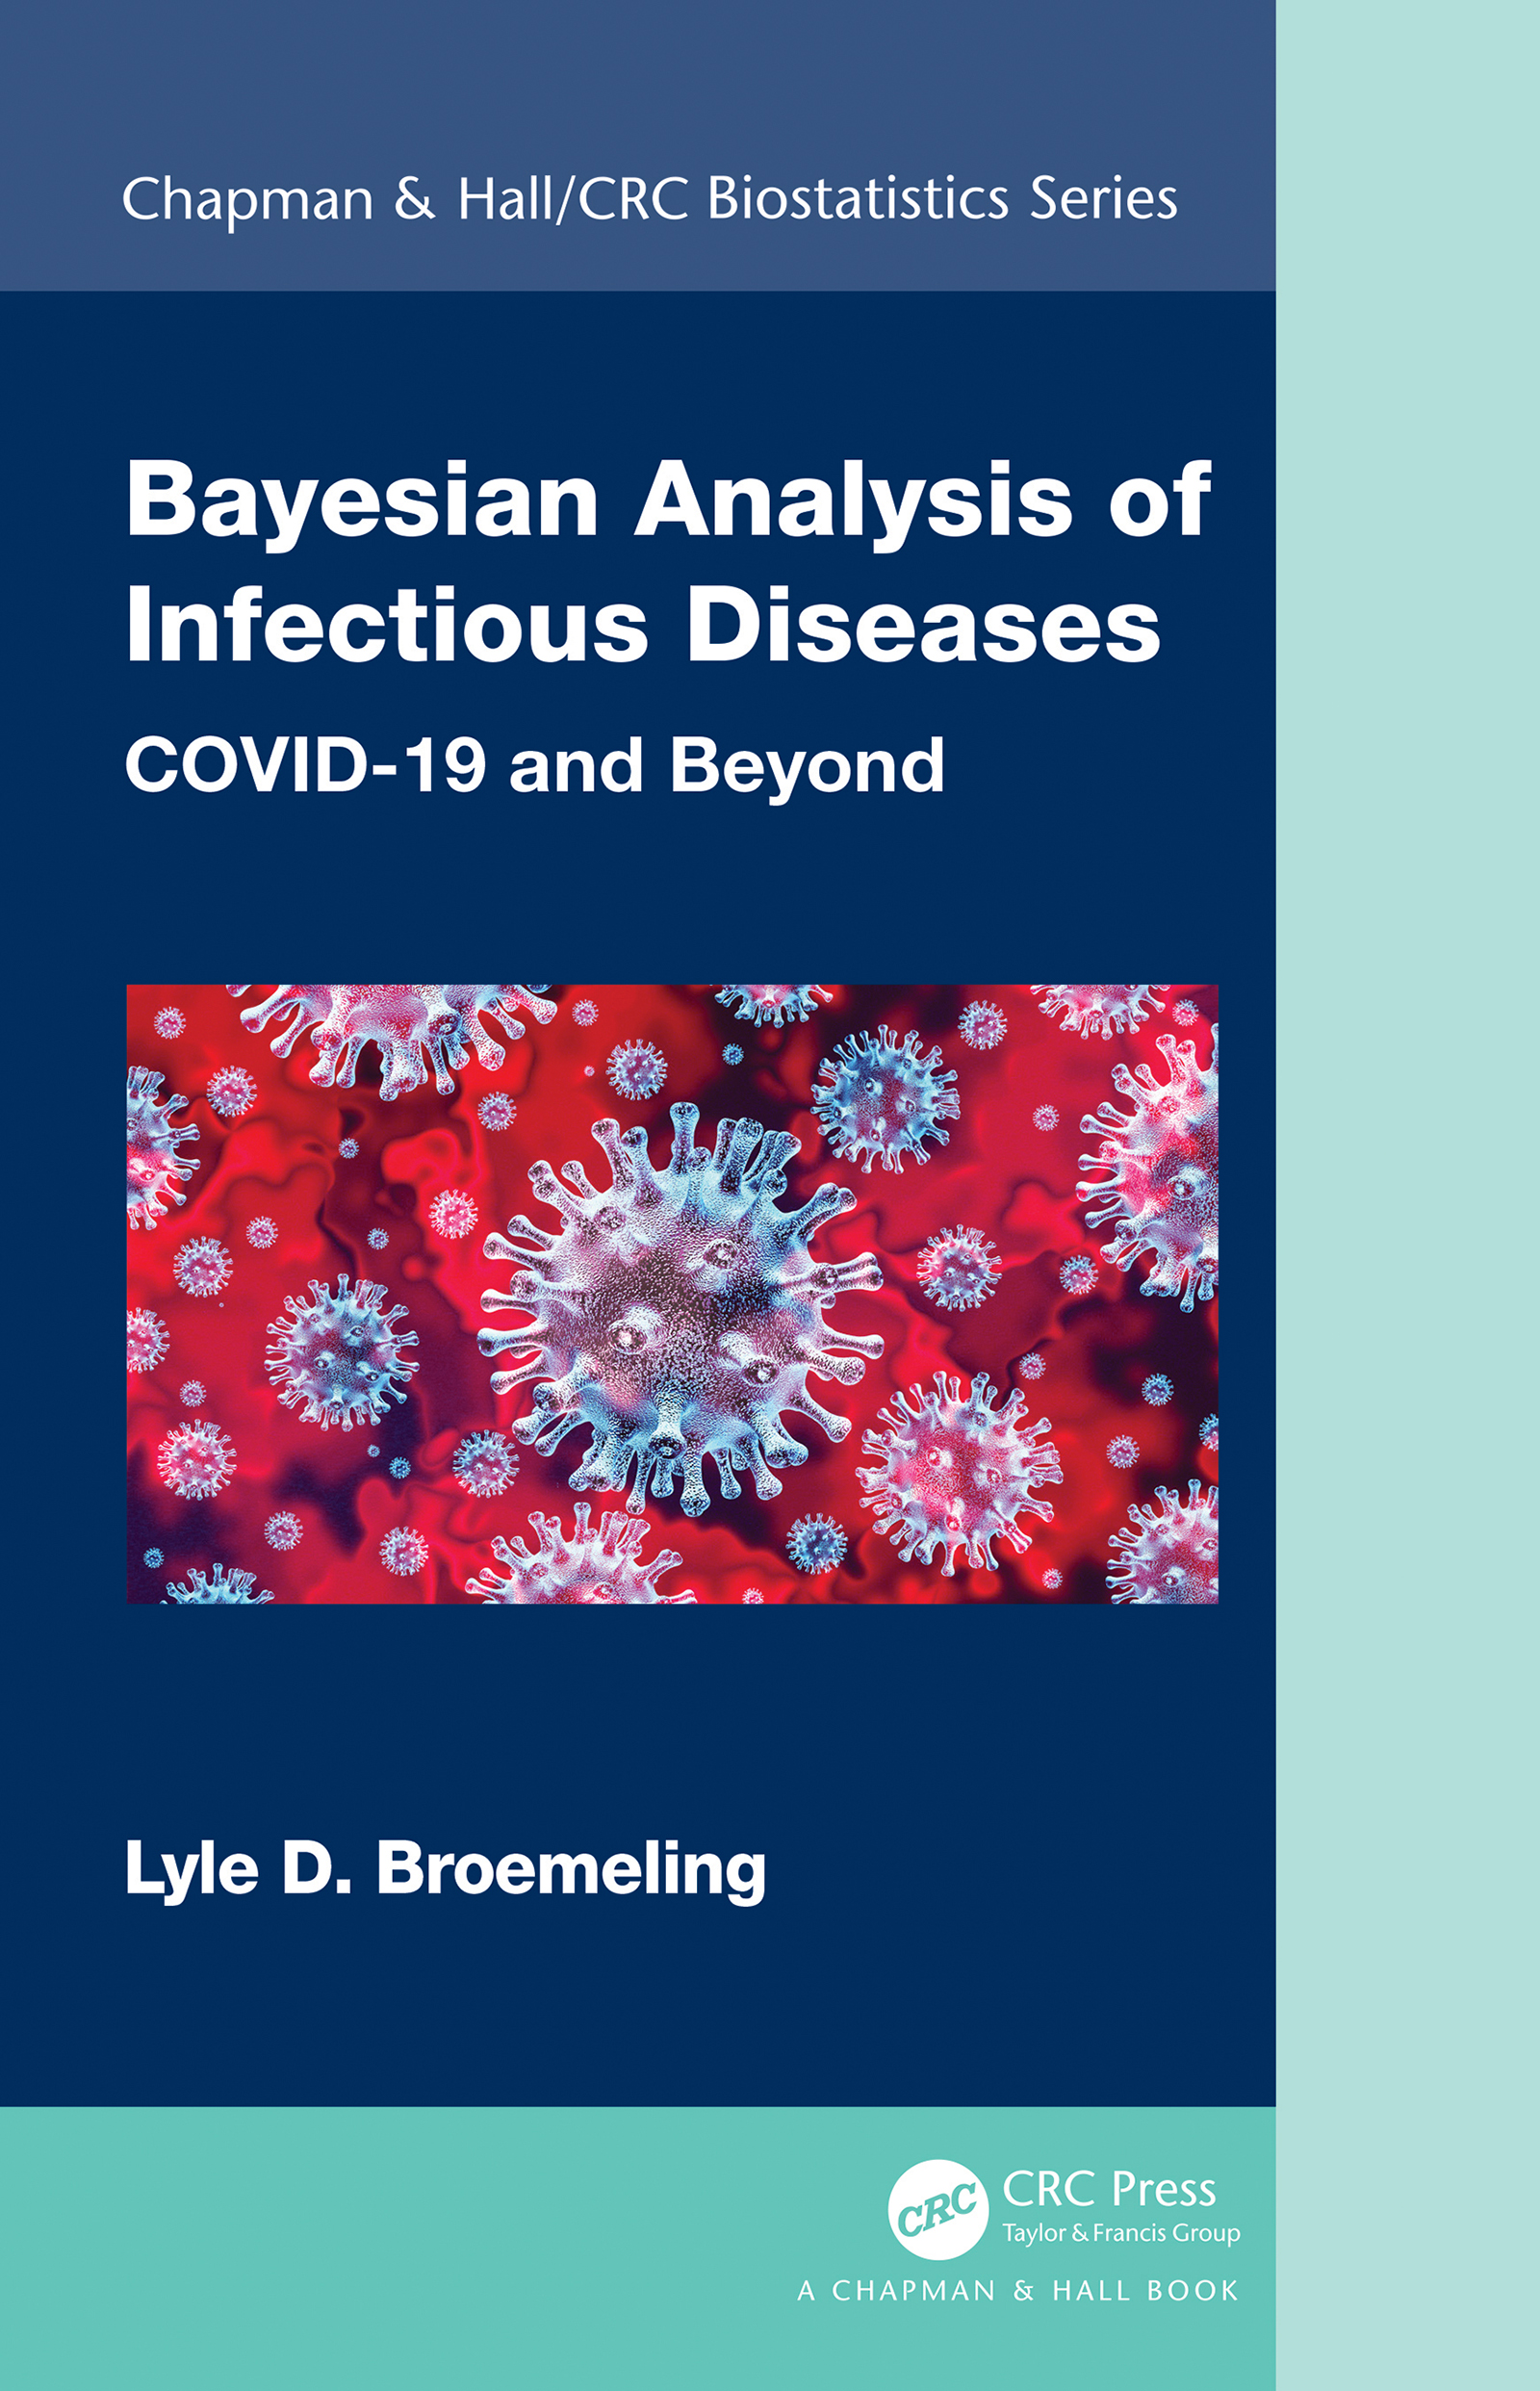 Bayesian Inference: Biological Processes that Follow a Continuous Time Markov Chain